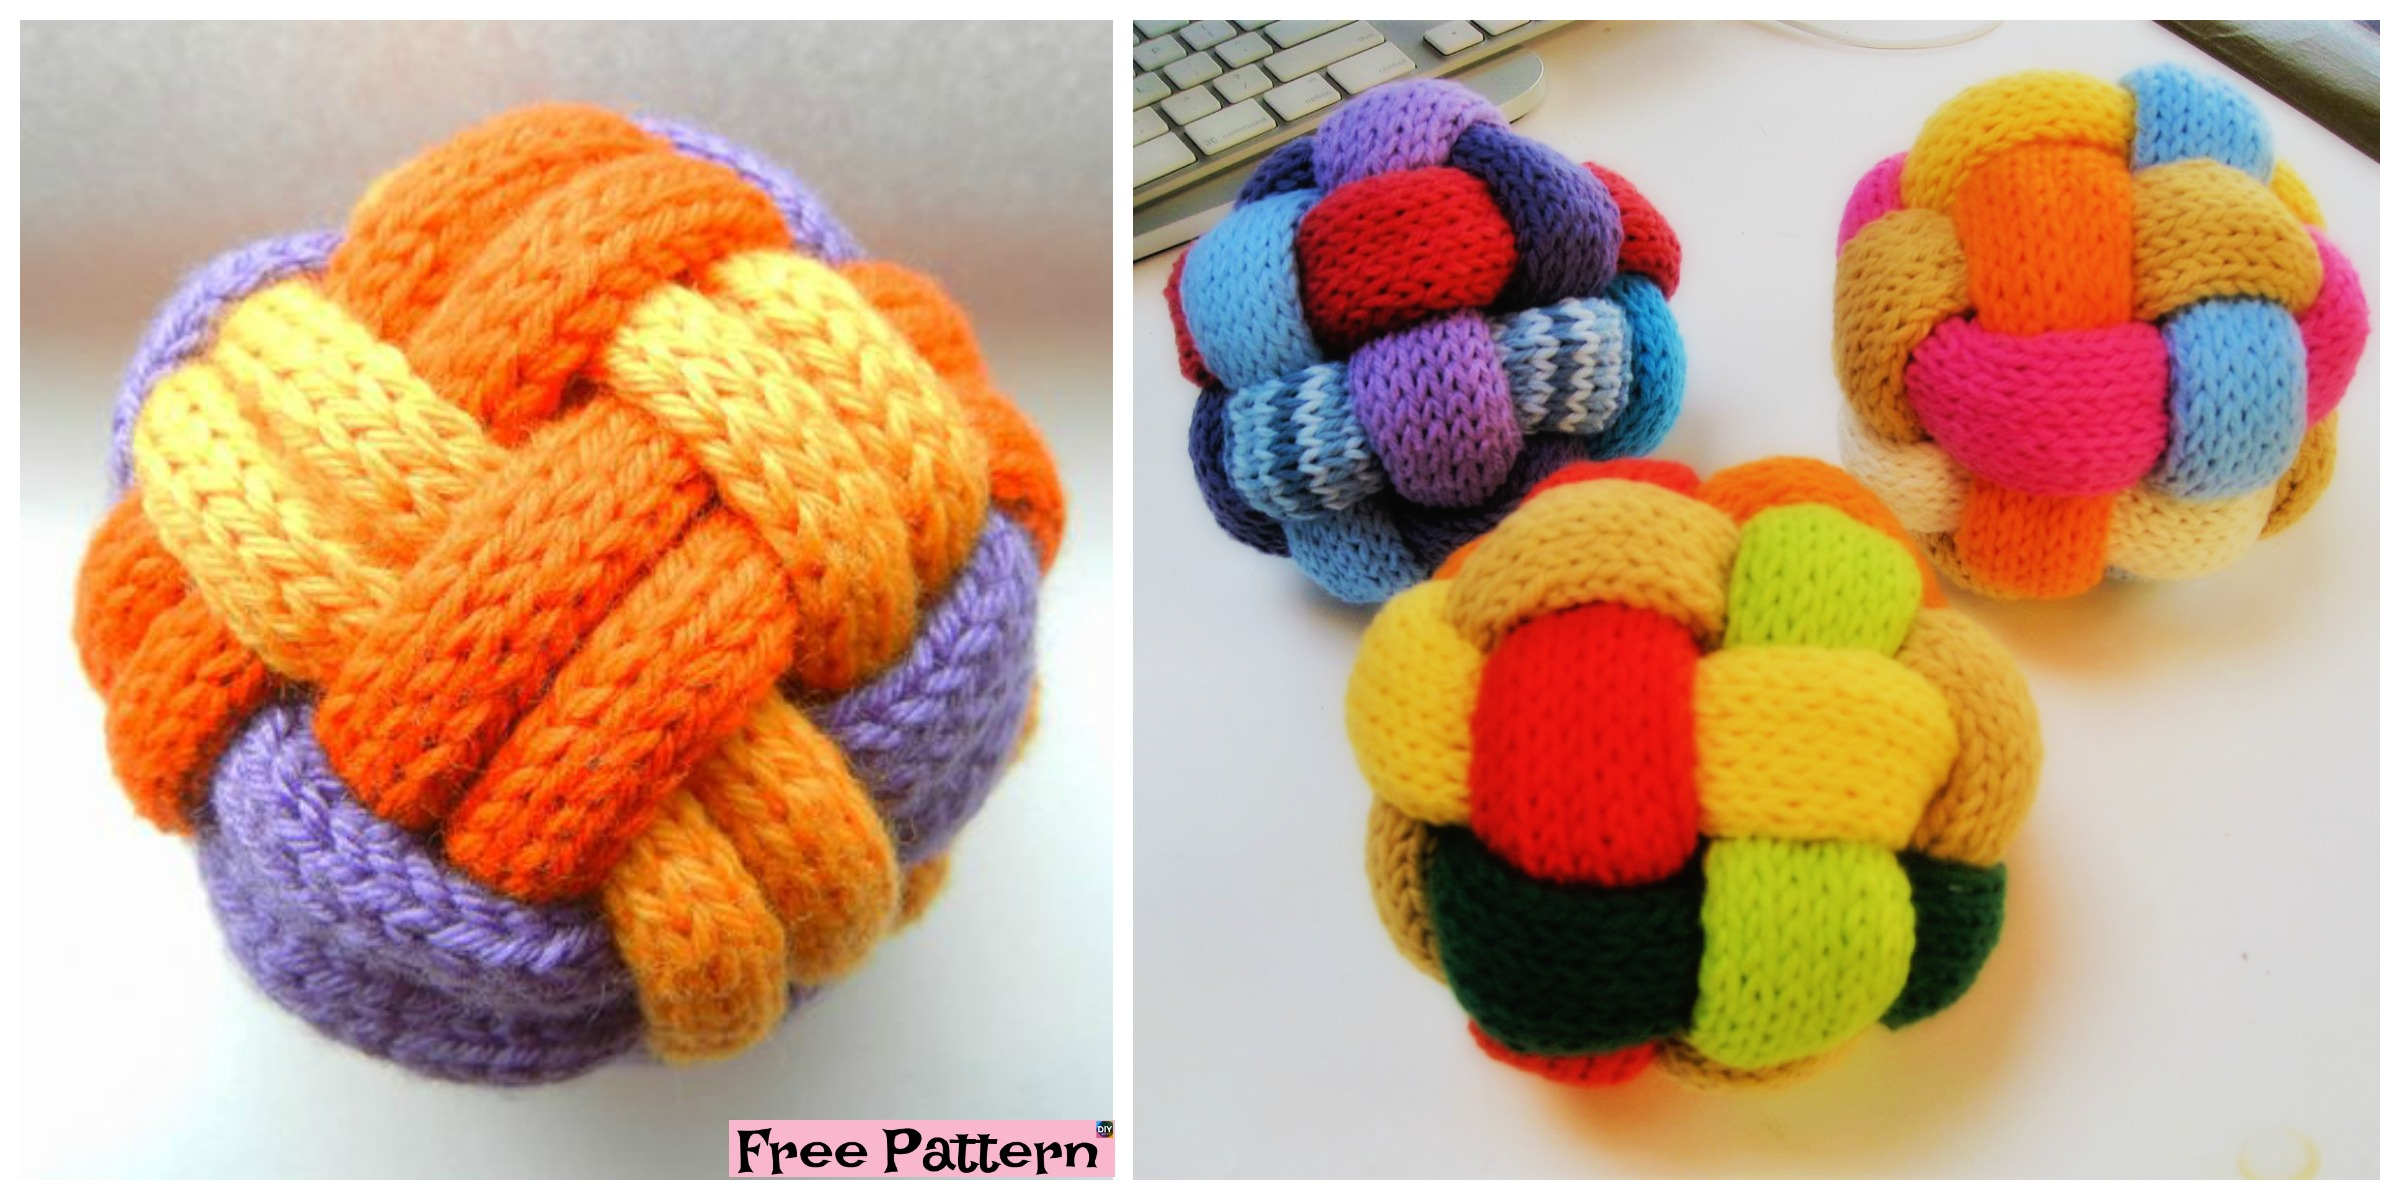 Knitted Ball Pattern Free Decorative Knitted Braided Ball Free Pattern Diy 4 Ever